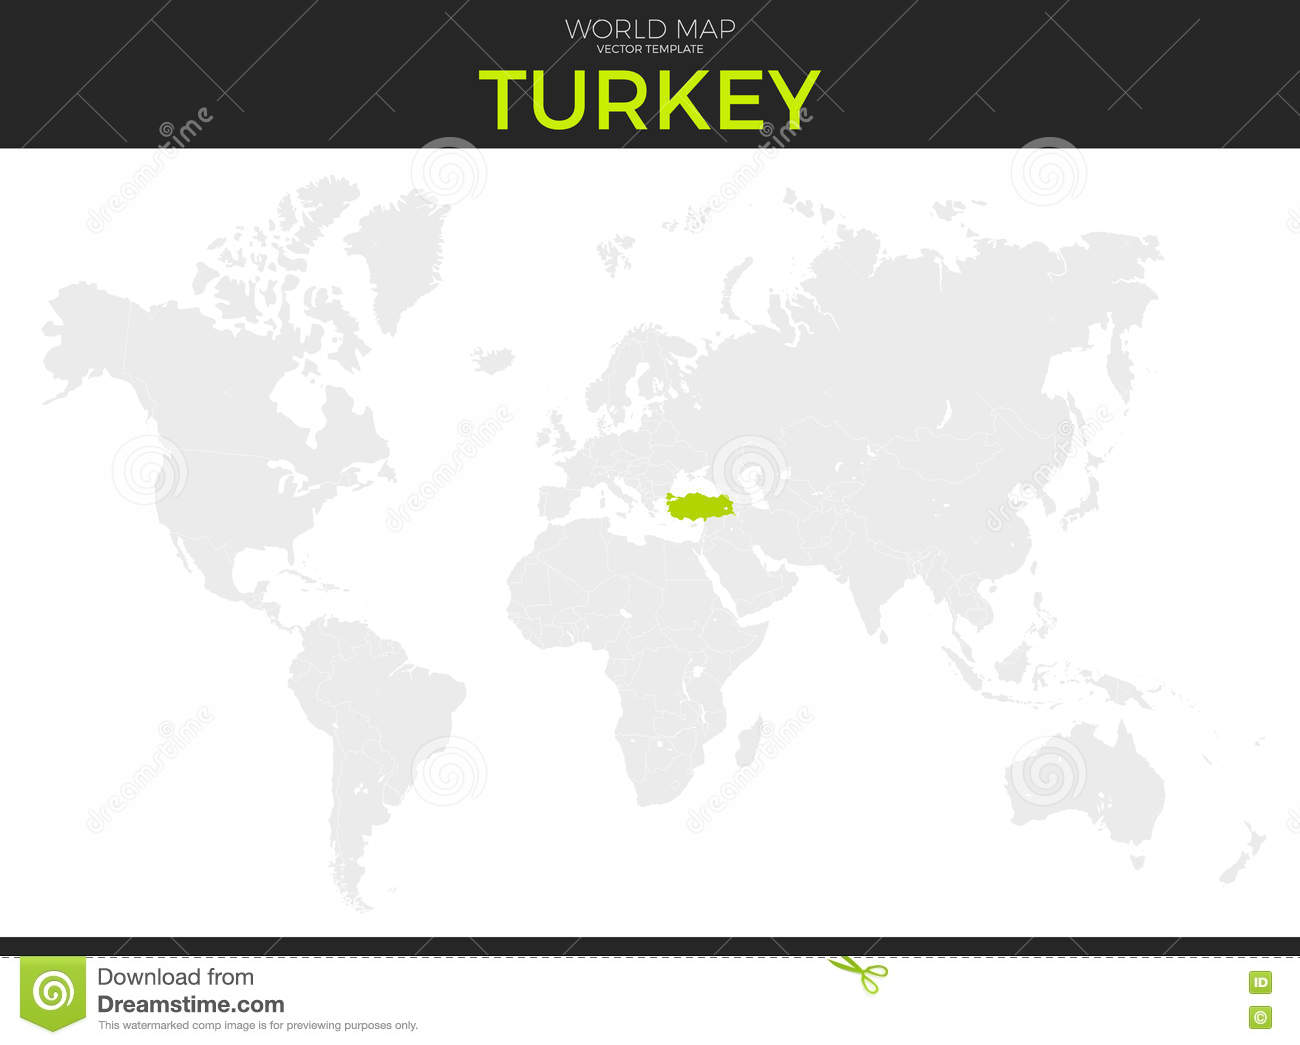 Turkey Map Of World.Republic Of Turkey Location Map Stock Vector Illustration Of